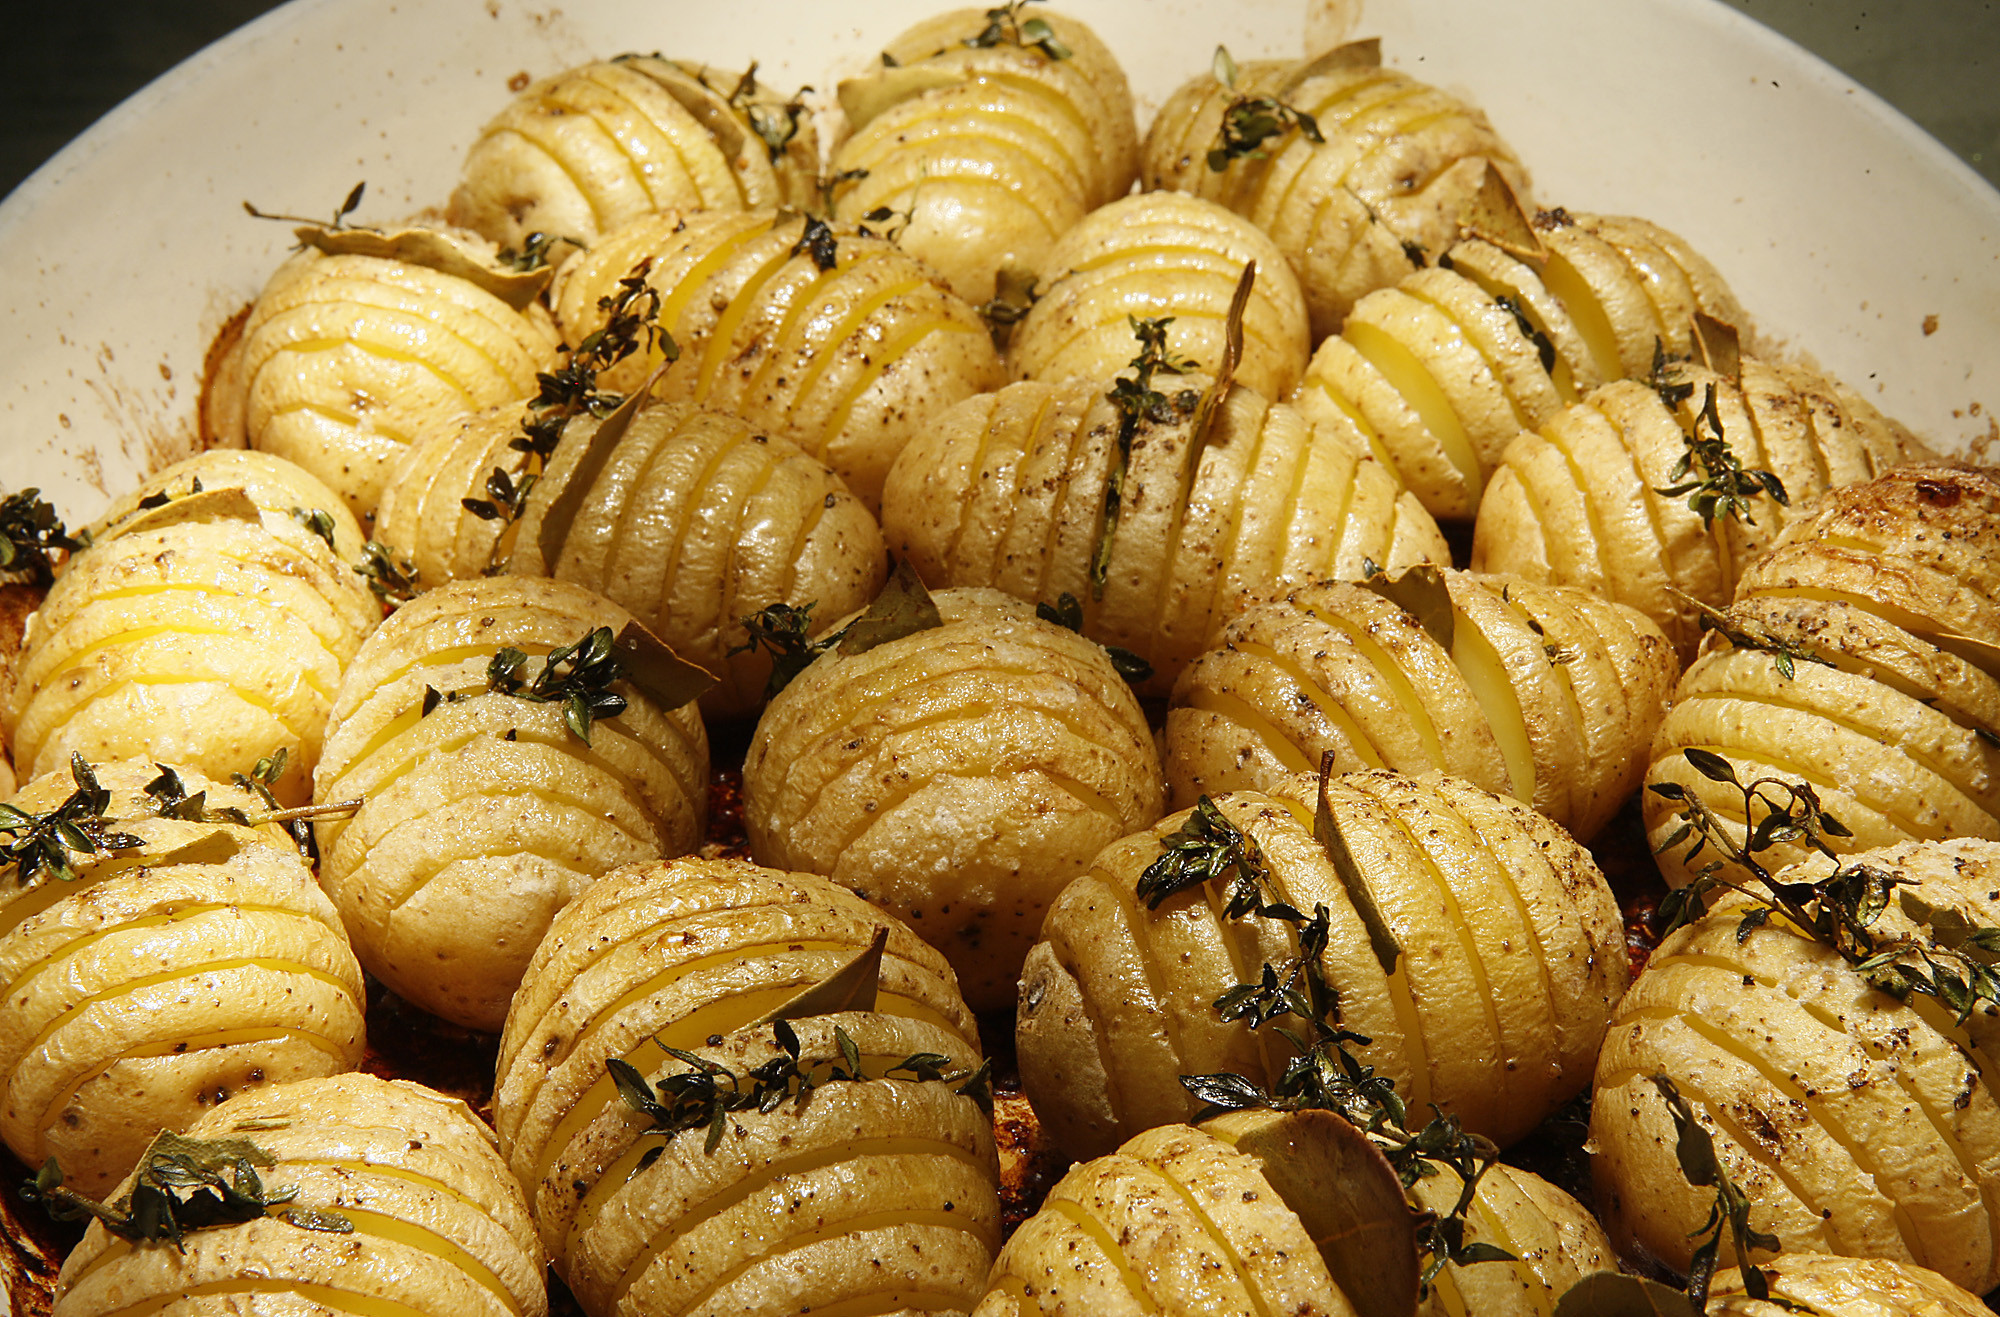 Photos: 97 great Thanksgiving recipes - Hedgehog potatoes